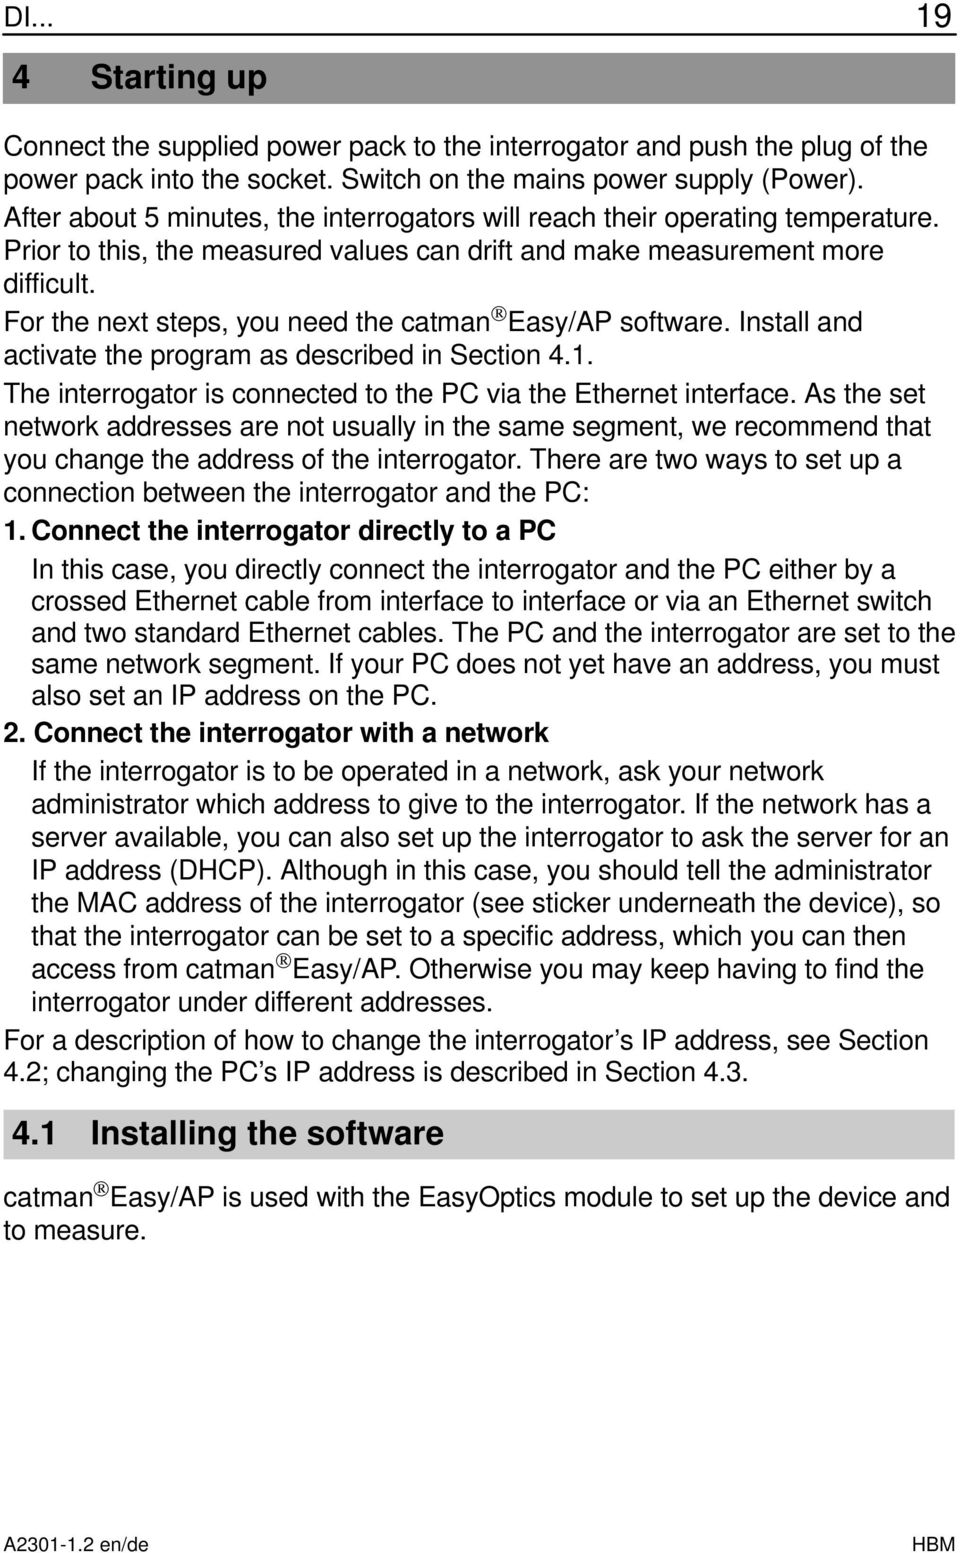 For the next steps, you need the catman Easy/AP software. Install and activate the program as described in Section 4.1. The interrogator is connected to the PC via the Ethernet interface.